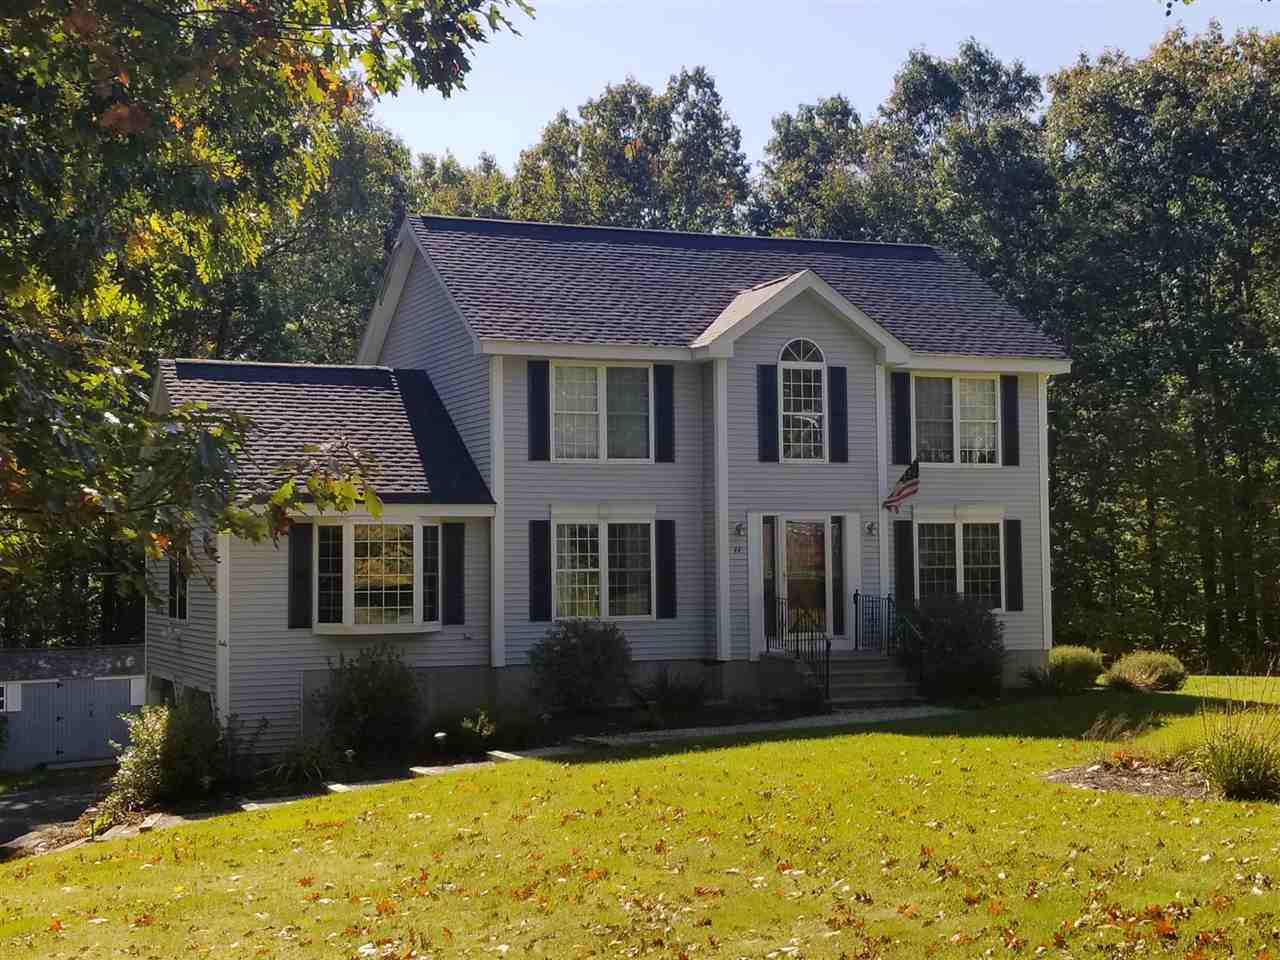 Photo of 44 Acorn Drive Goffstown NH 03045